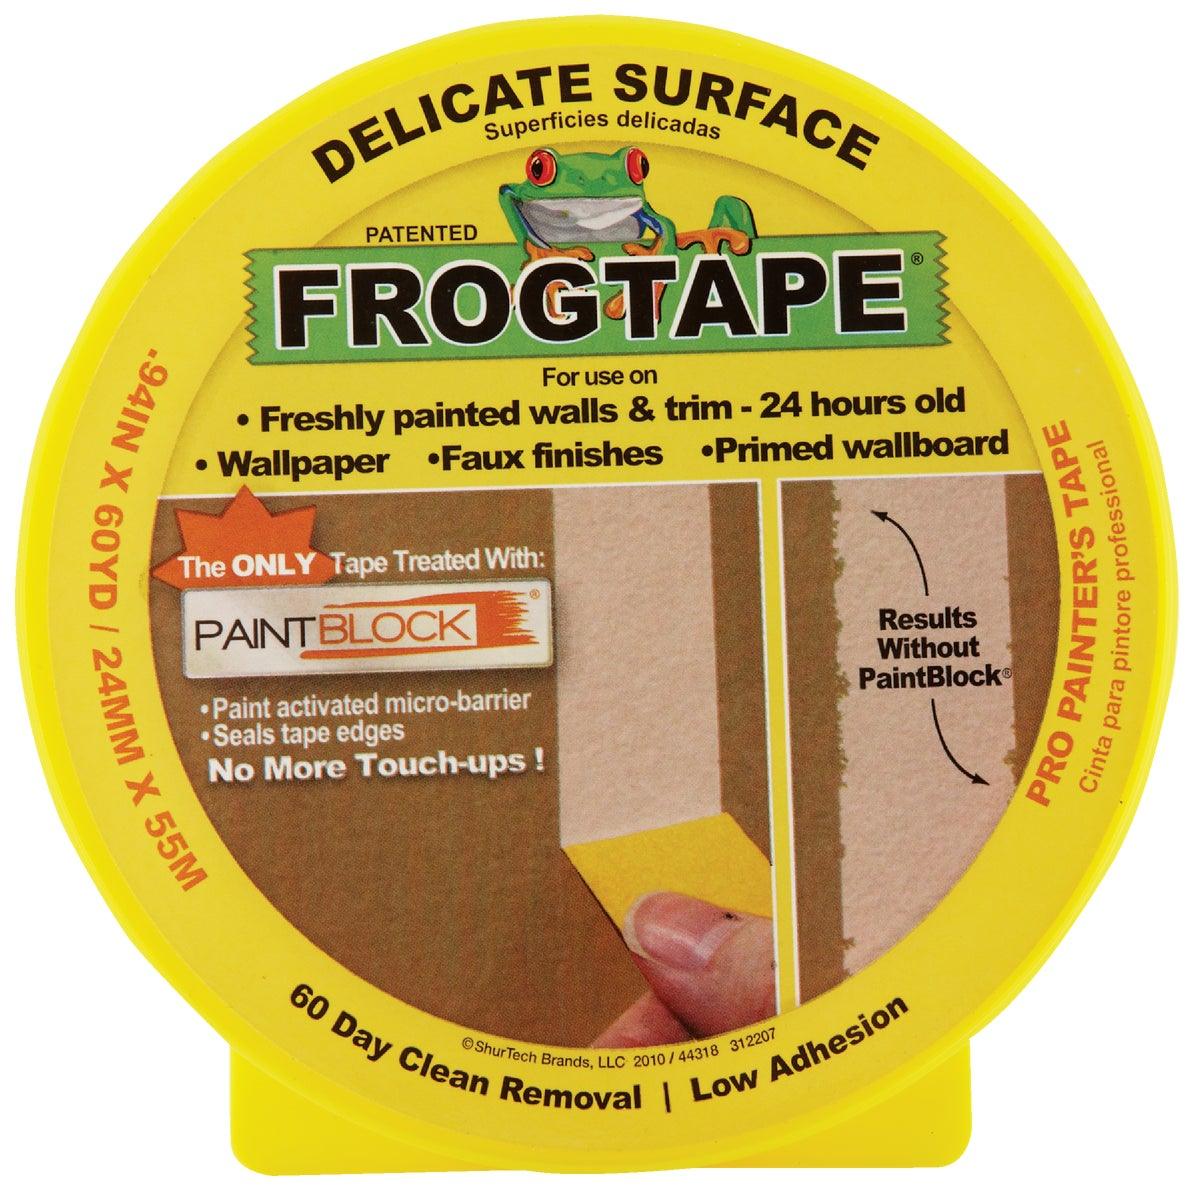 "DELICATE .94"" FROG TAPE"